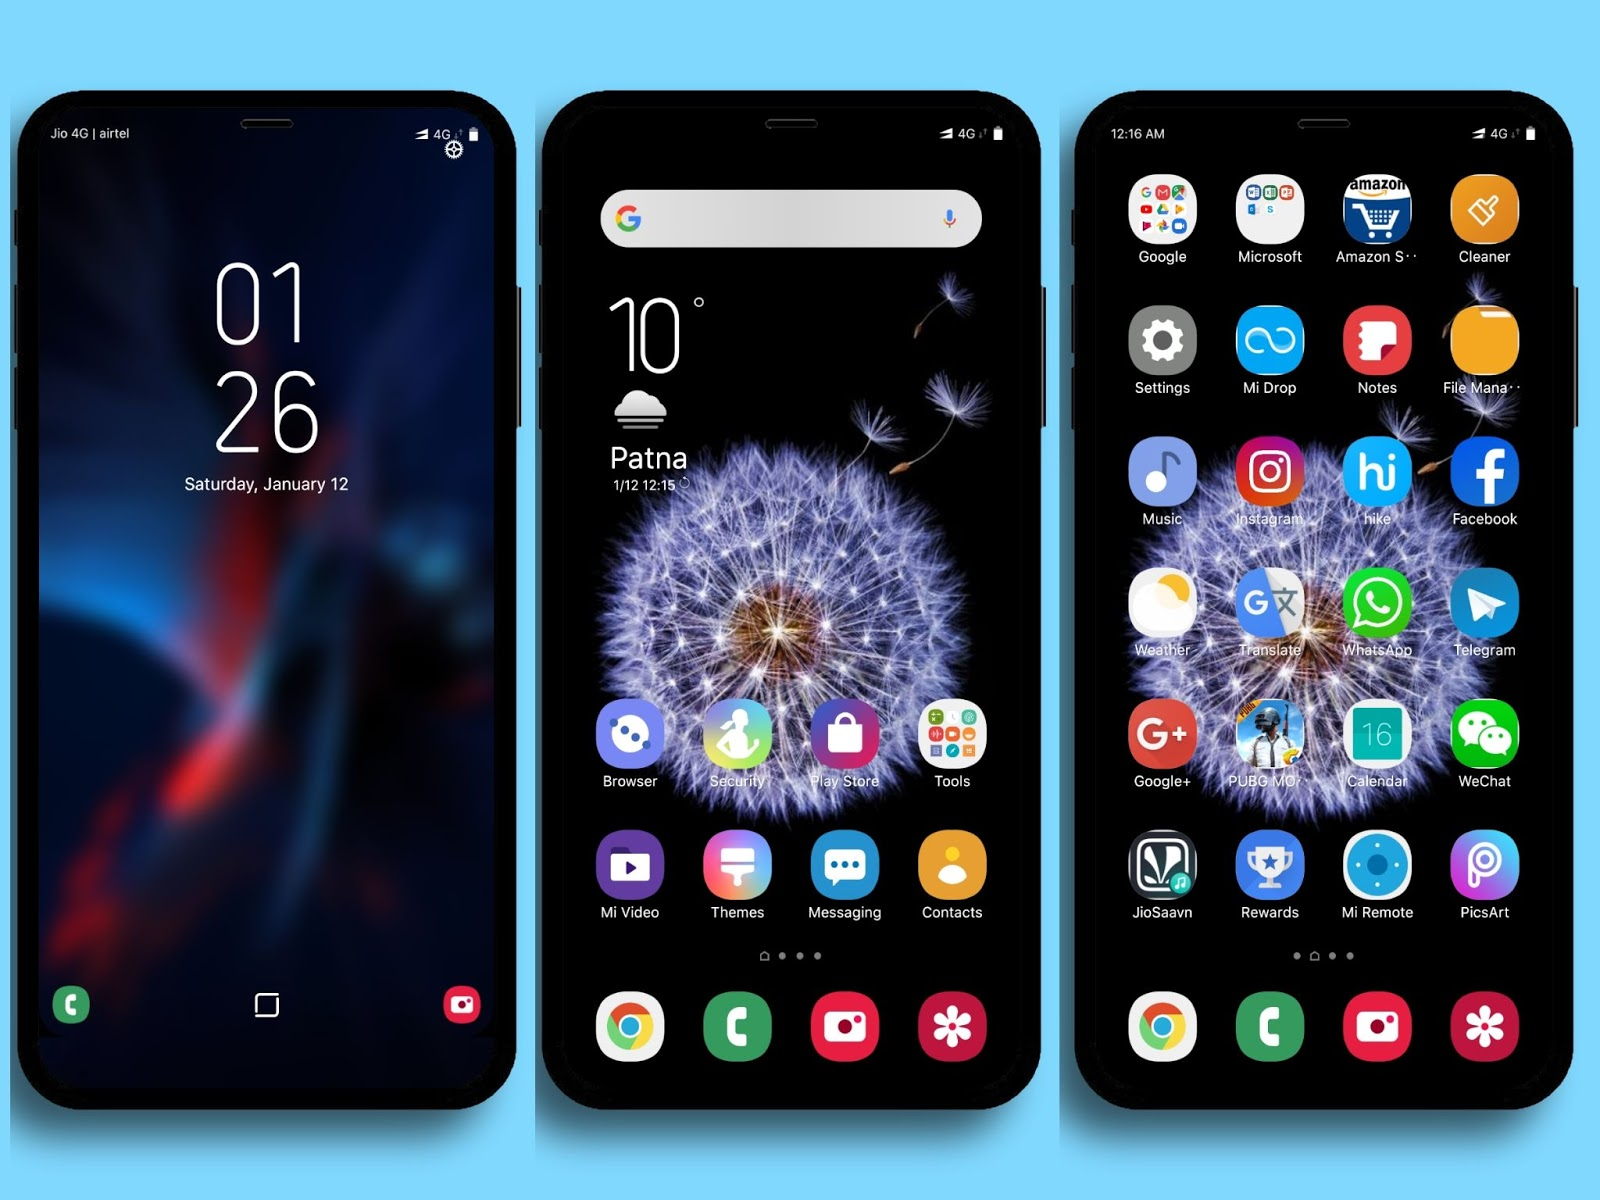 Samsung One Ui Miui Theme Download For Xiaomi Mobile Xiaomi Themes Miui Theme